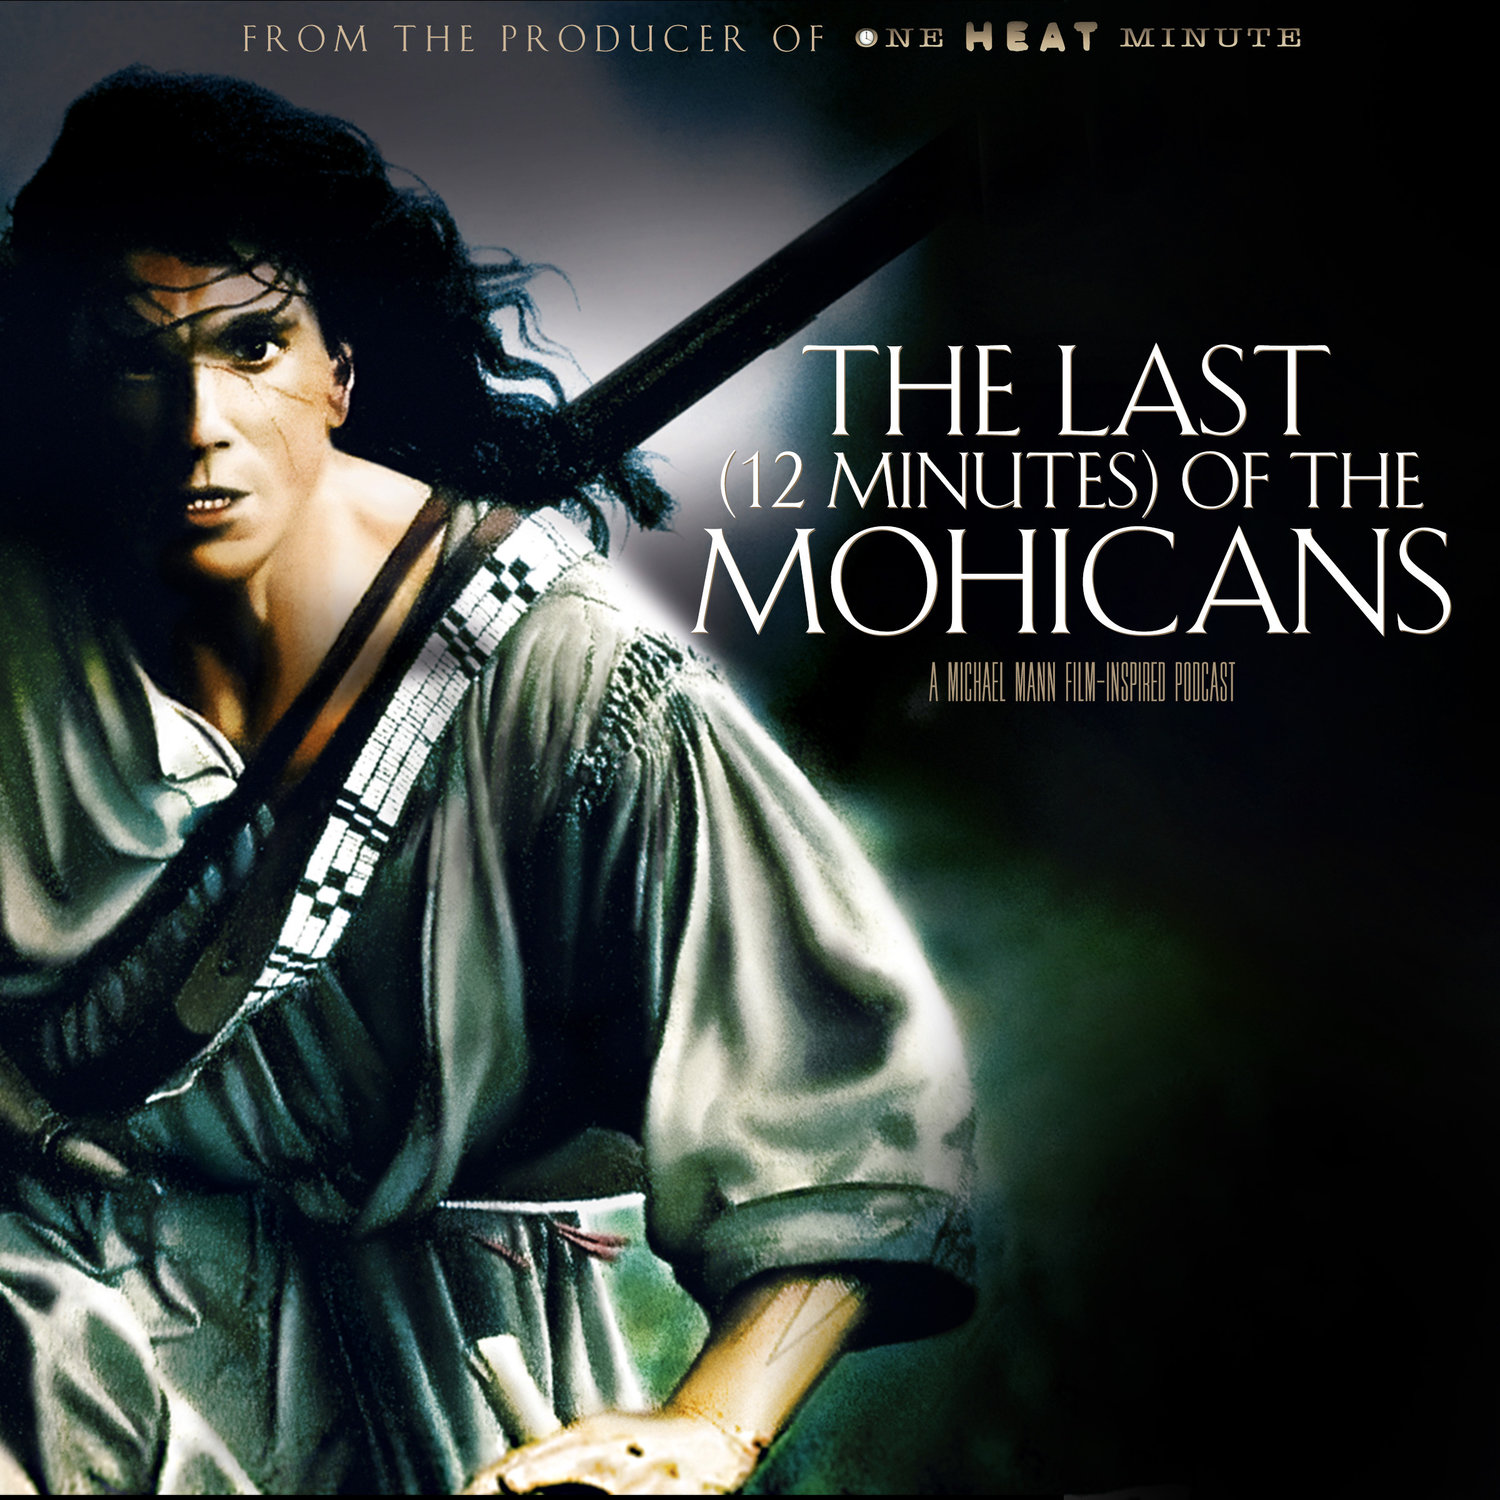 The Last 12 Minutes Of The Mohicans Episode 9 Sean Burns And Jen Johans One Heat Minute Productions The last of the mohicans (1992). one heat minute productions